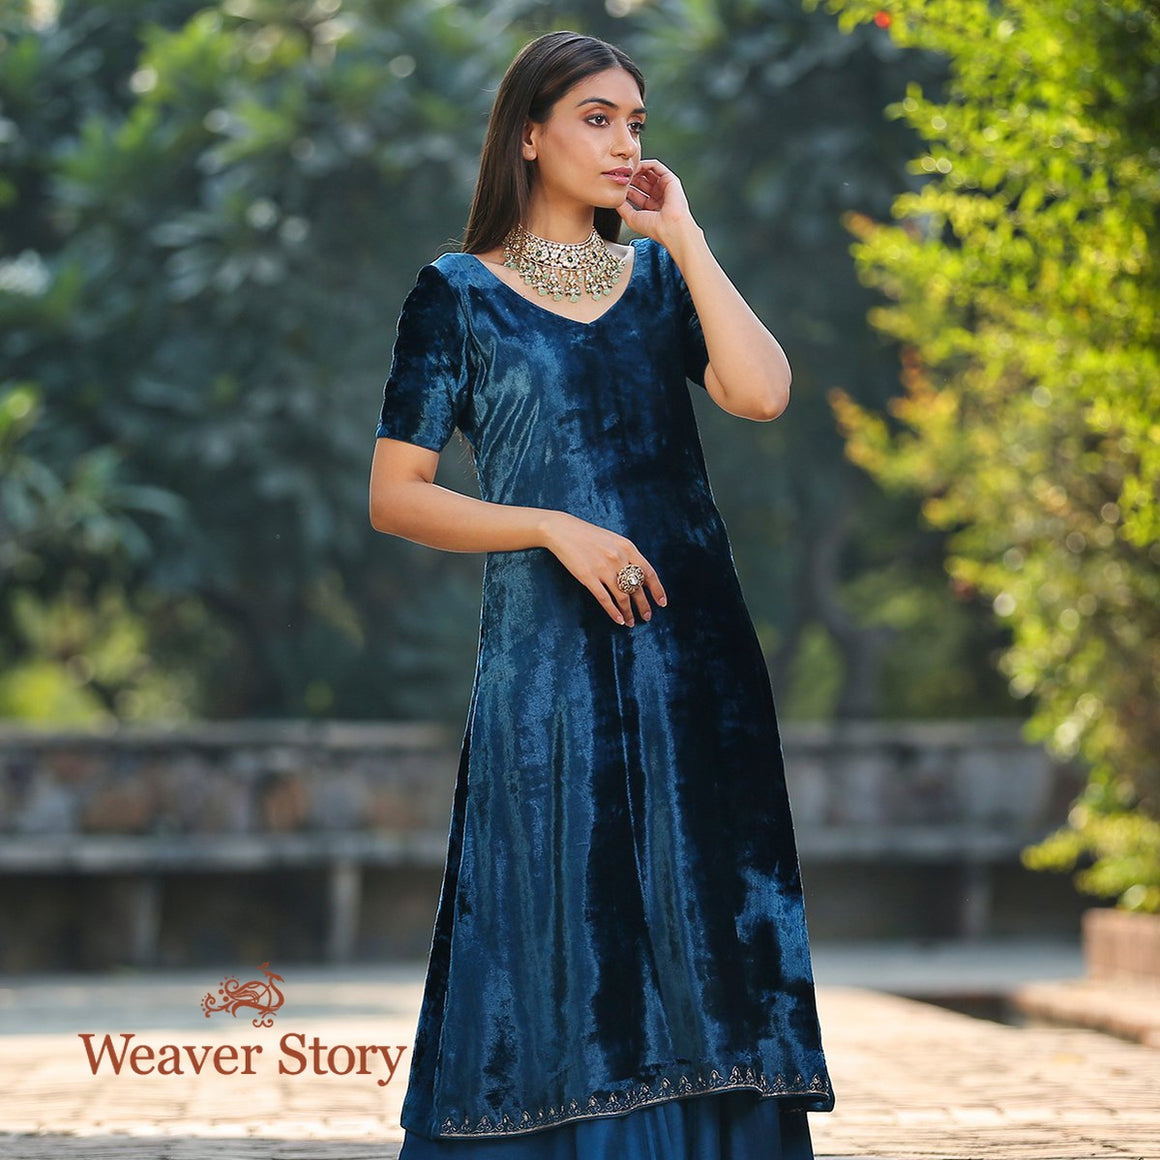 Teal Blue Silk Velvet Kurta with Hand Embroidered Zardozi Detailing and Sharara